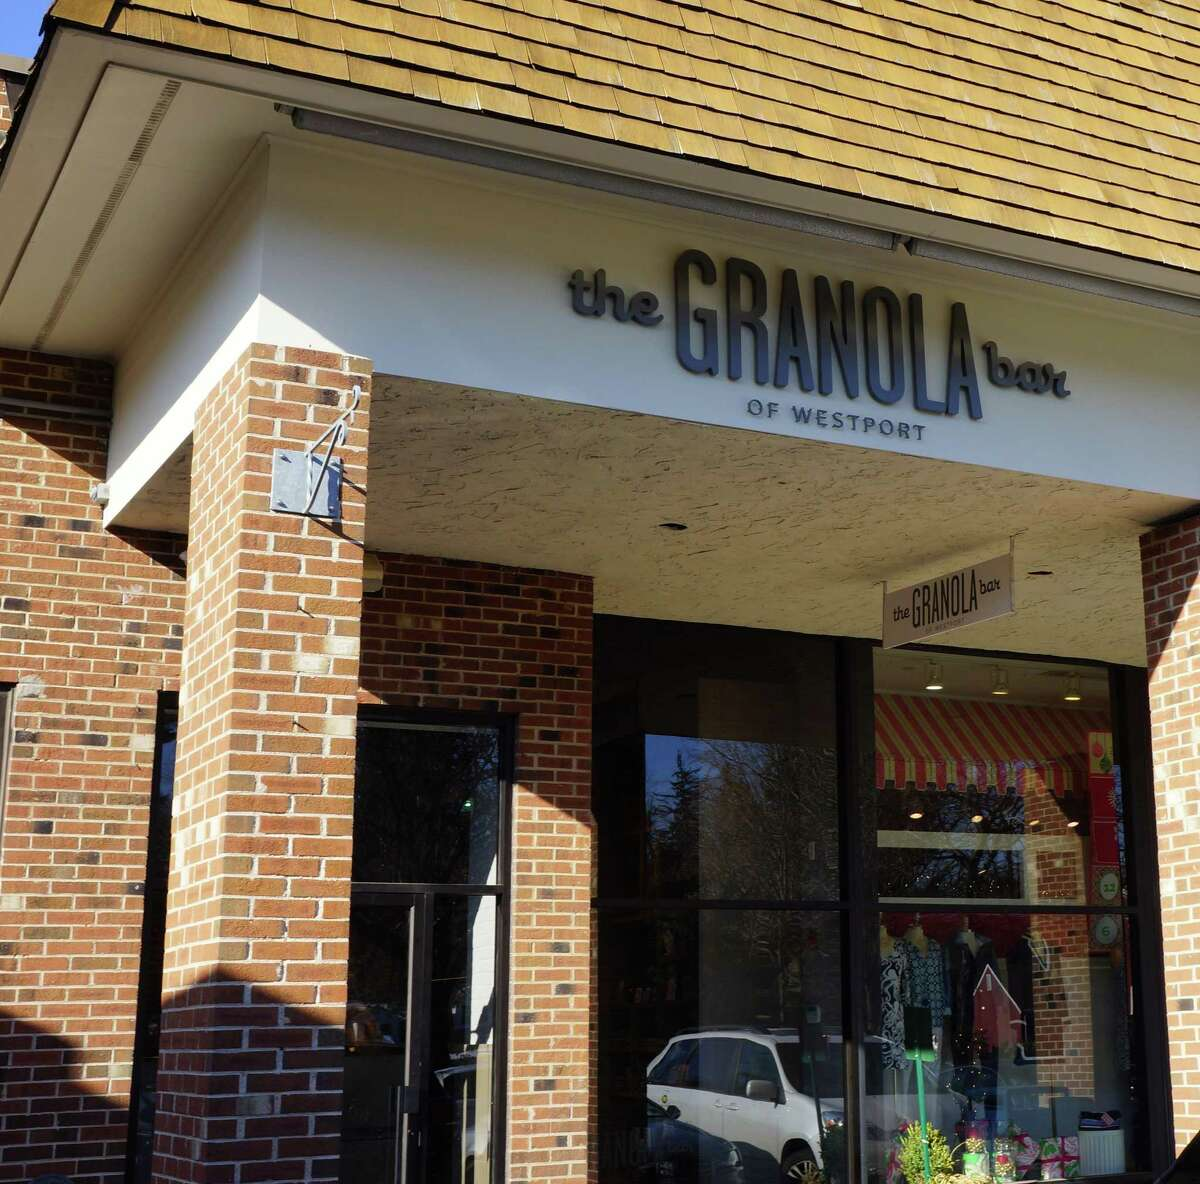 The Granola Bar Playhouse Square, 275 Post Road E. in Westport.